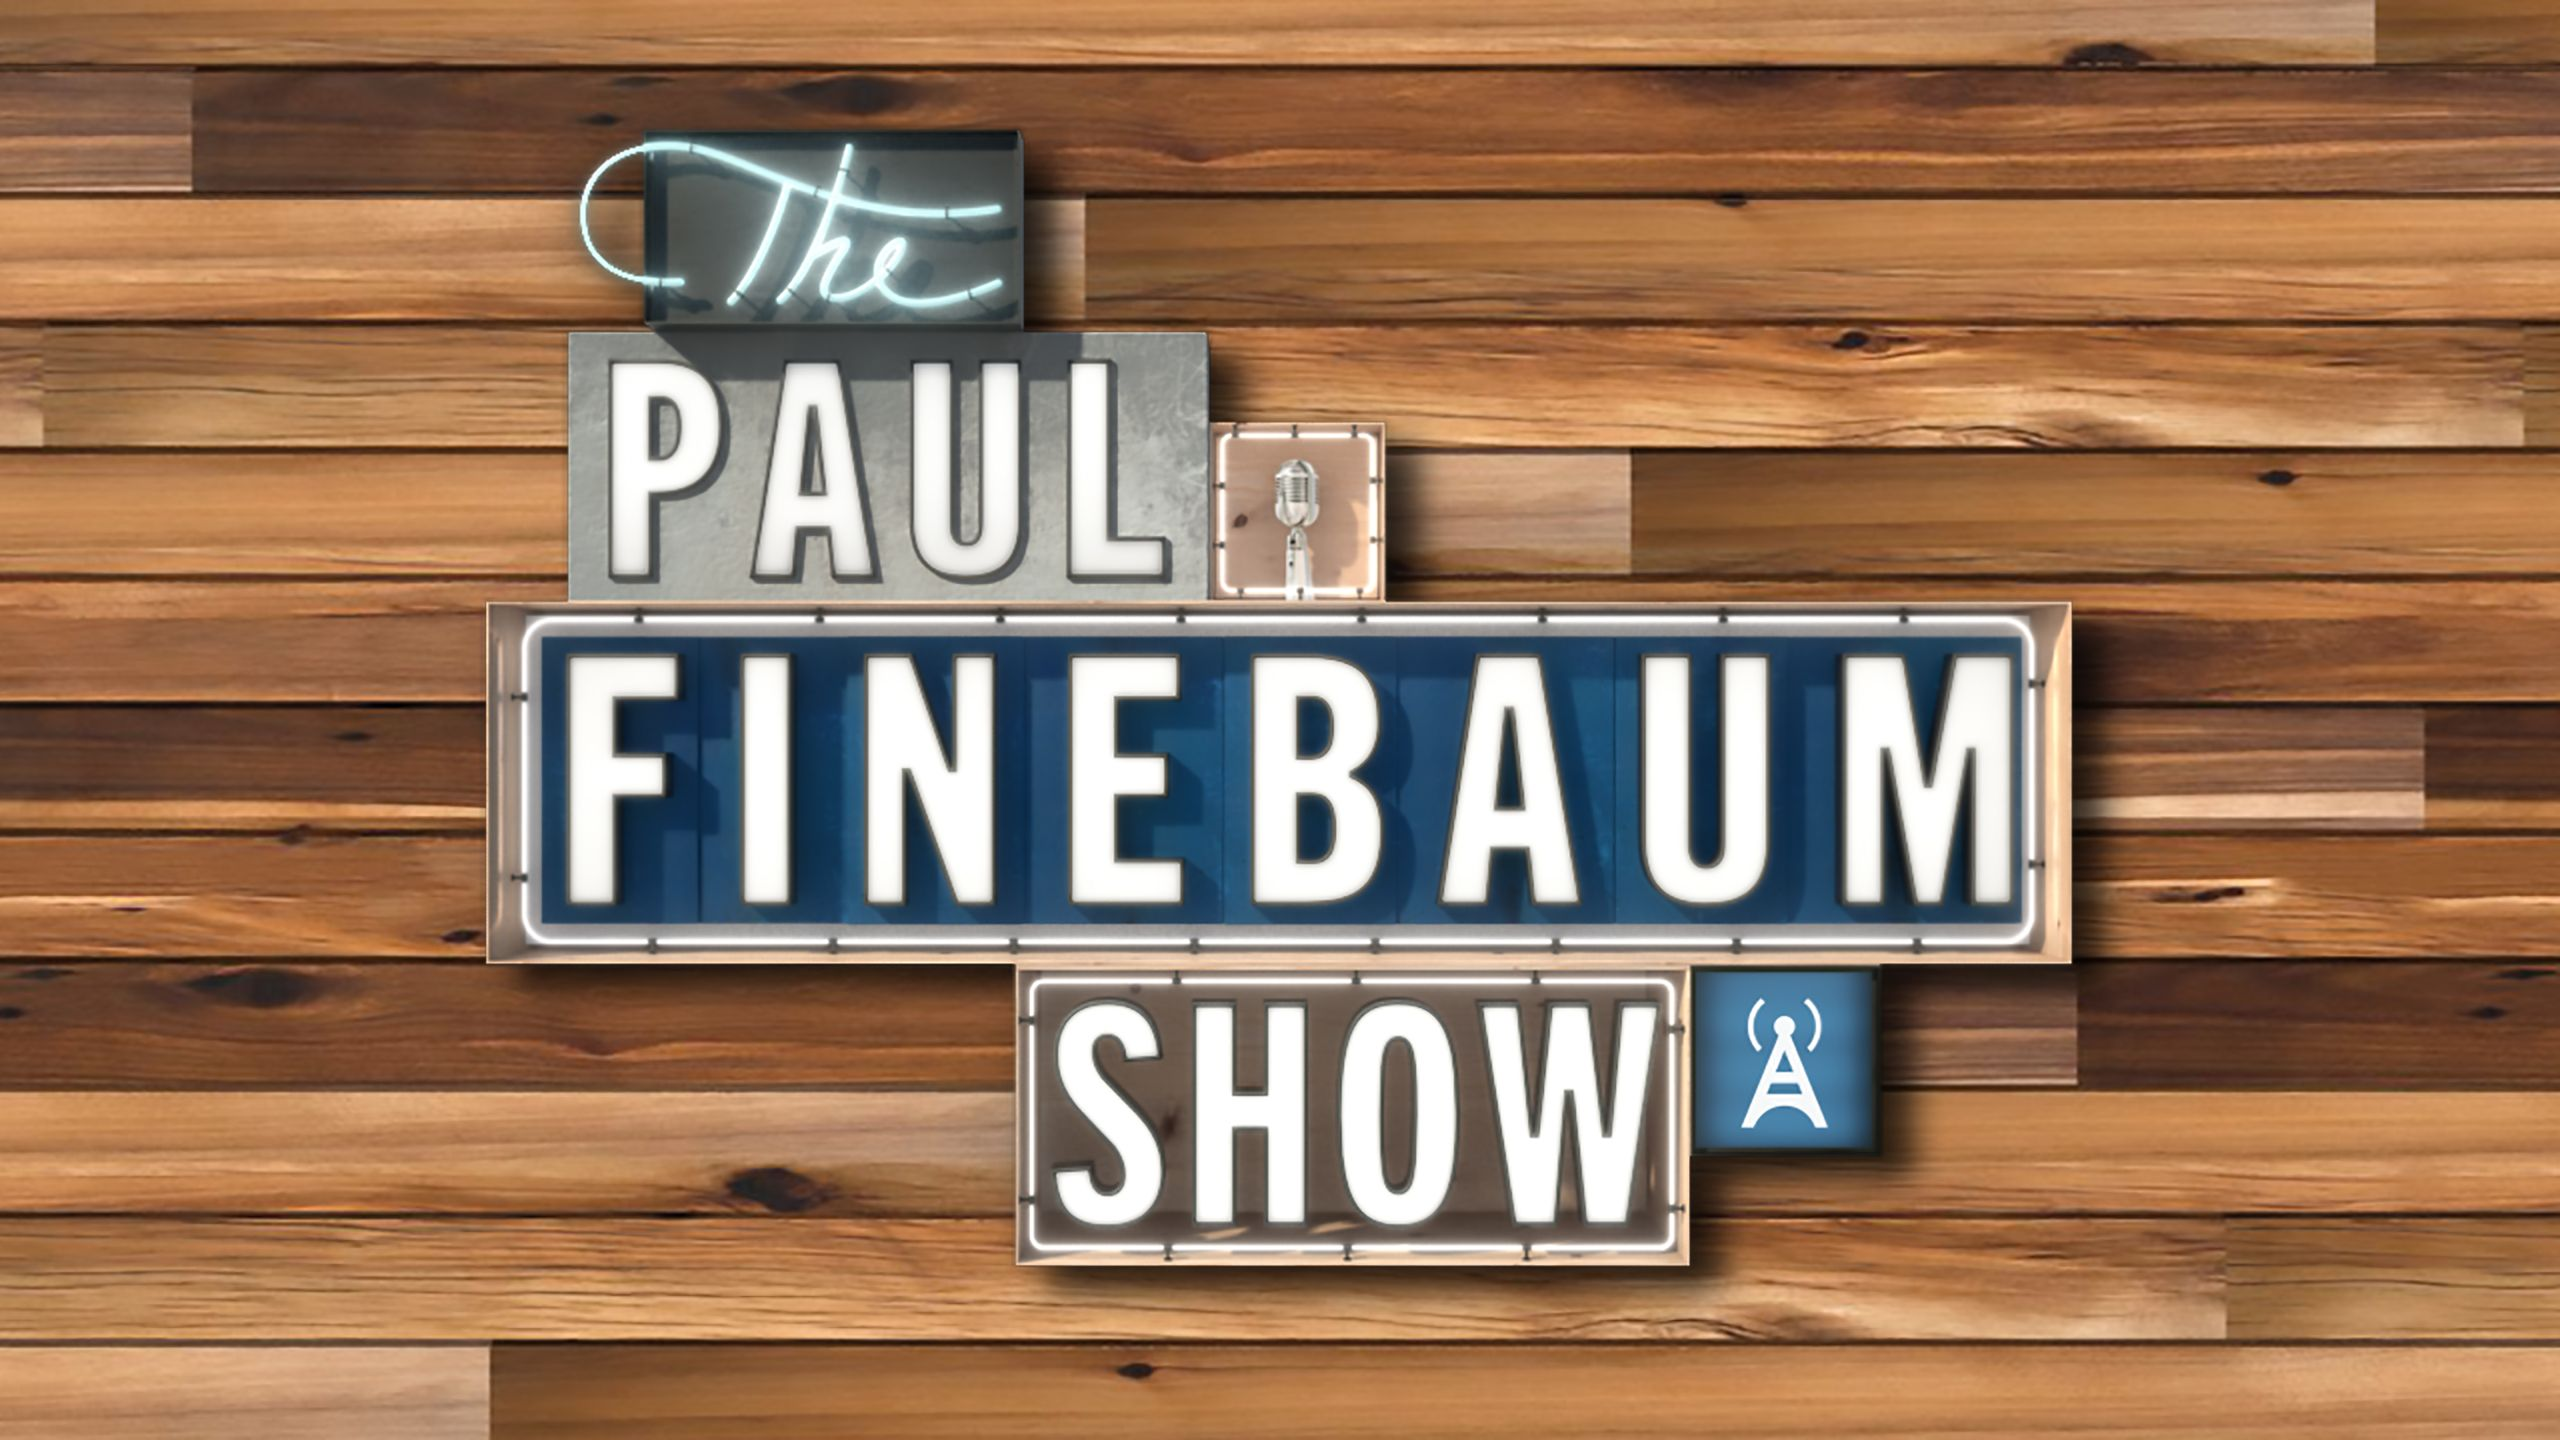 Mon, 10/23 - The Paul Finebaum Show Presented by Regions Bank